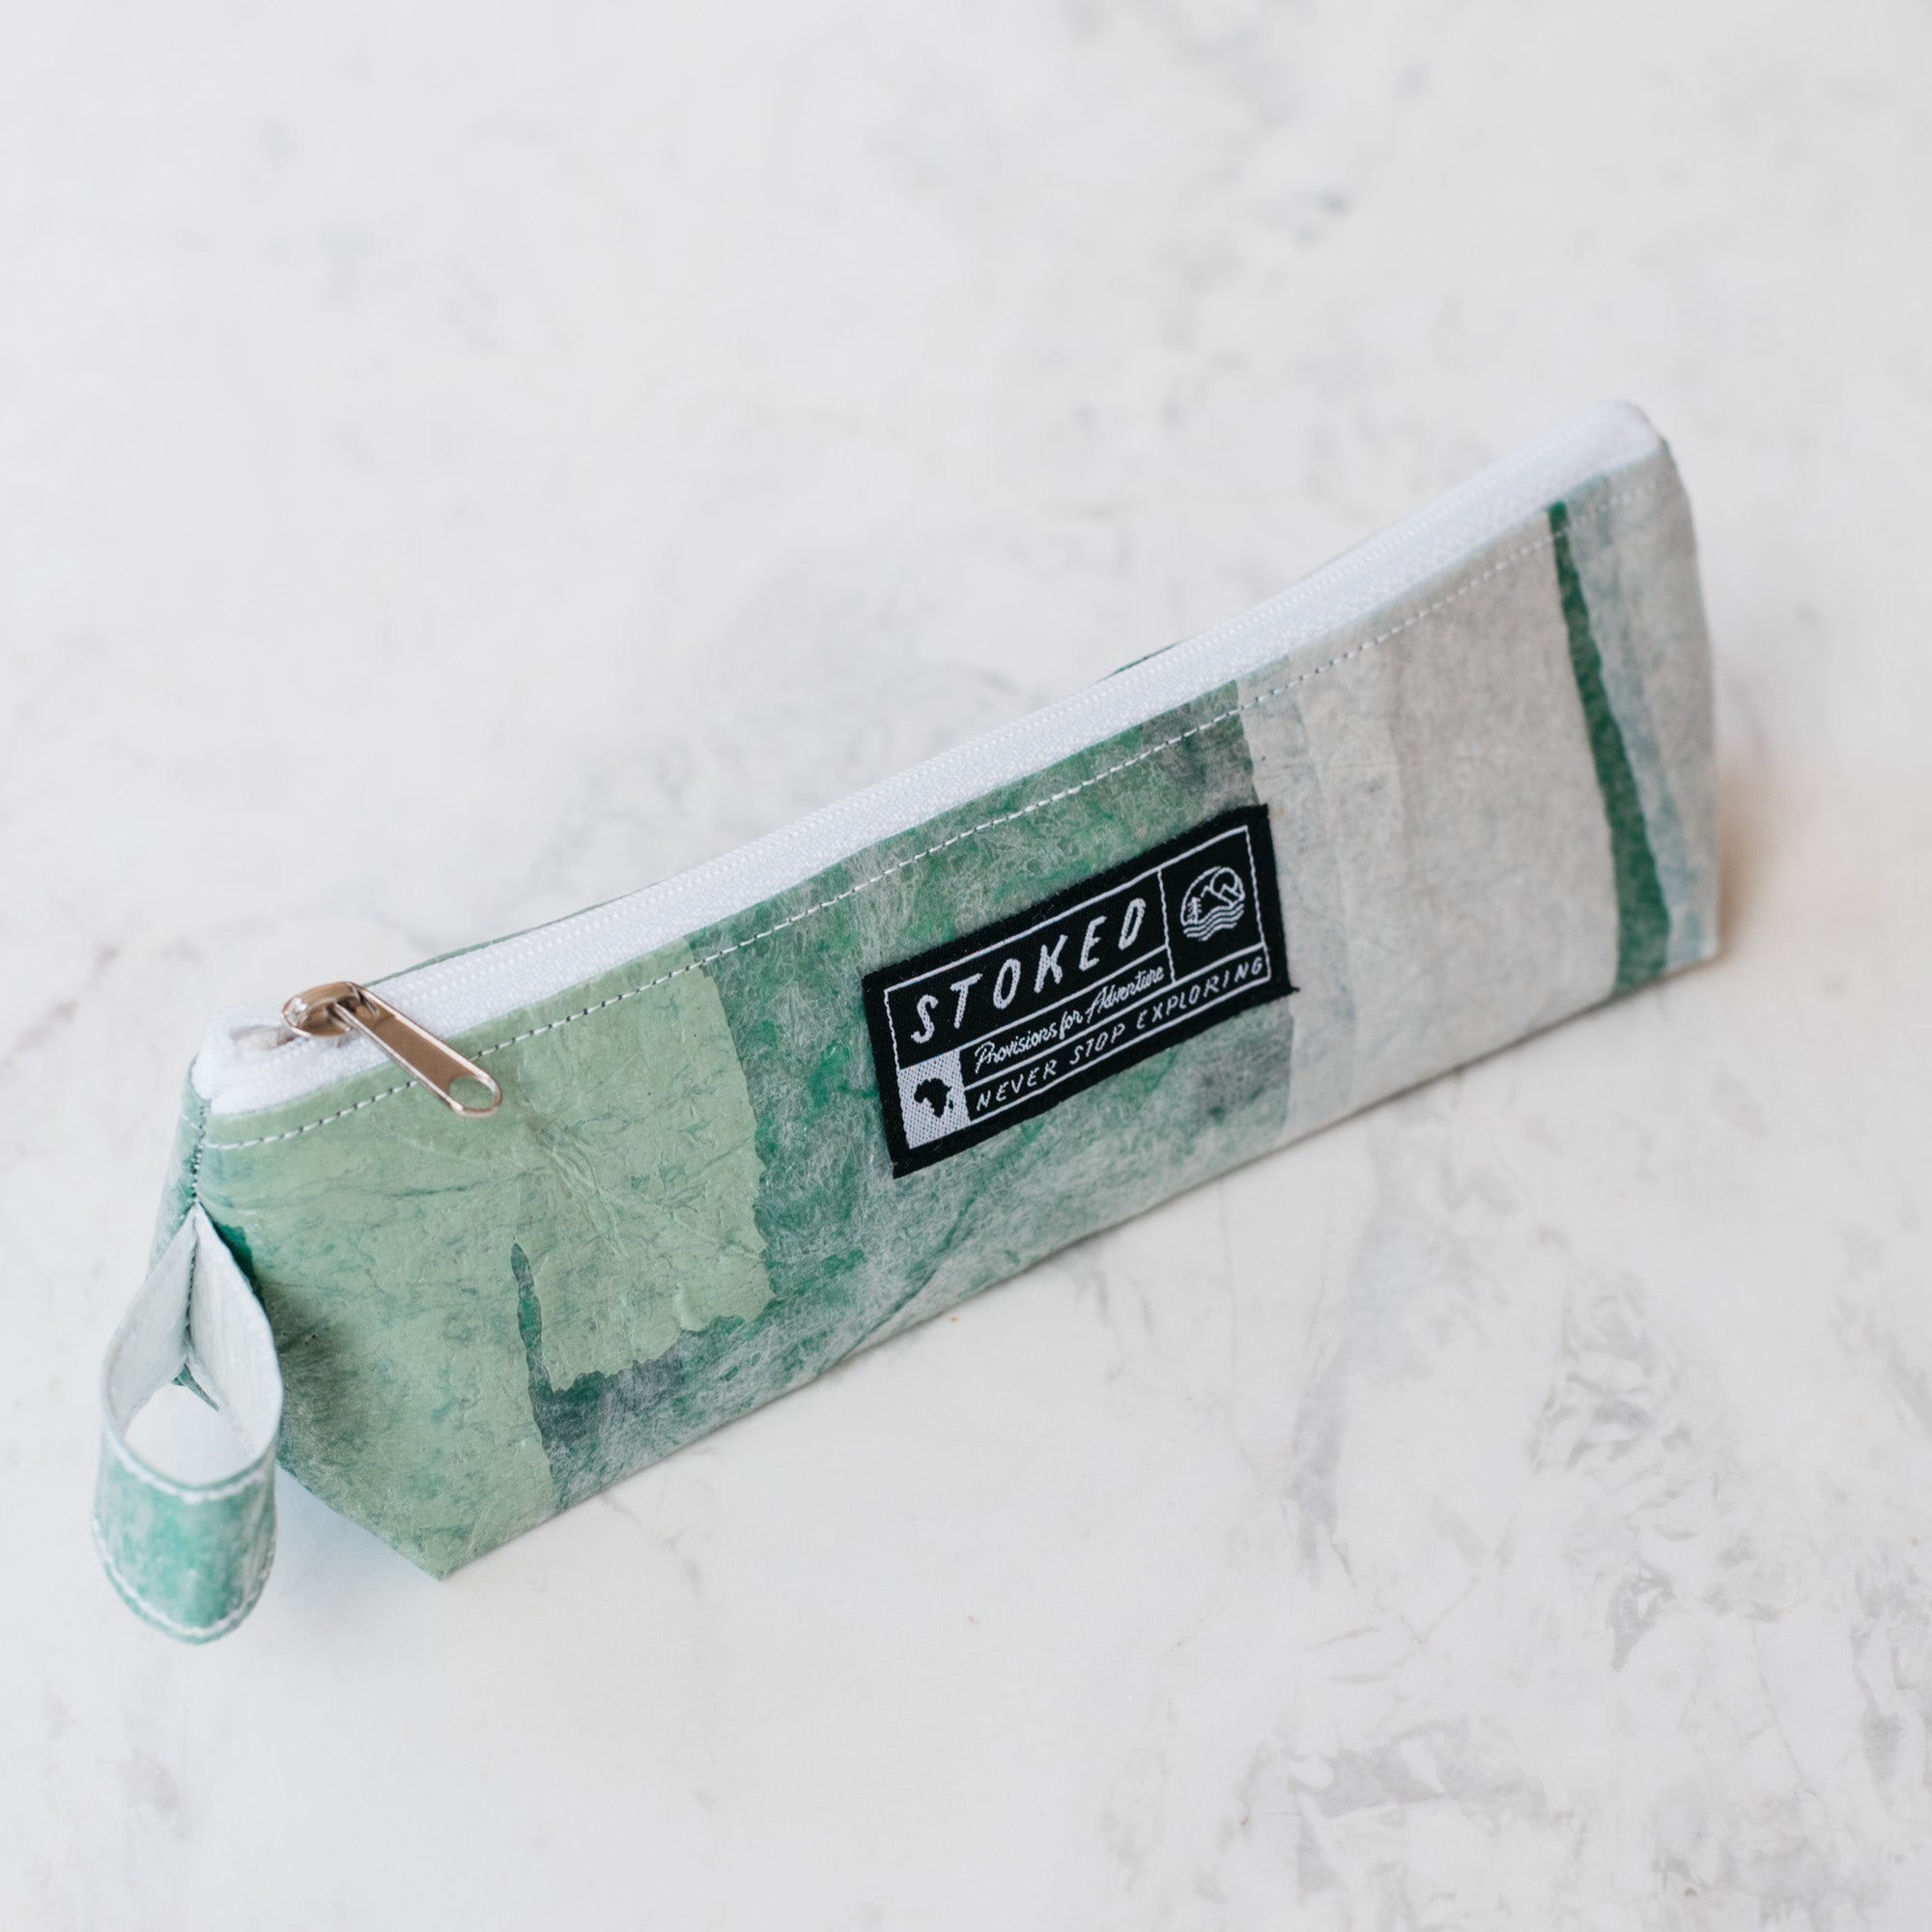 Upcycled Pencil Bag - Stokedthebrand. Lifestyle products for outdoor adventures. Made in South Africa